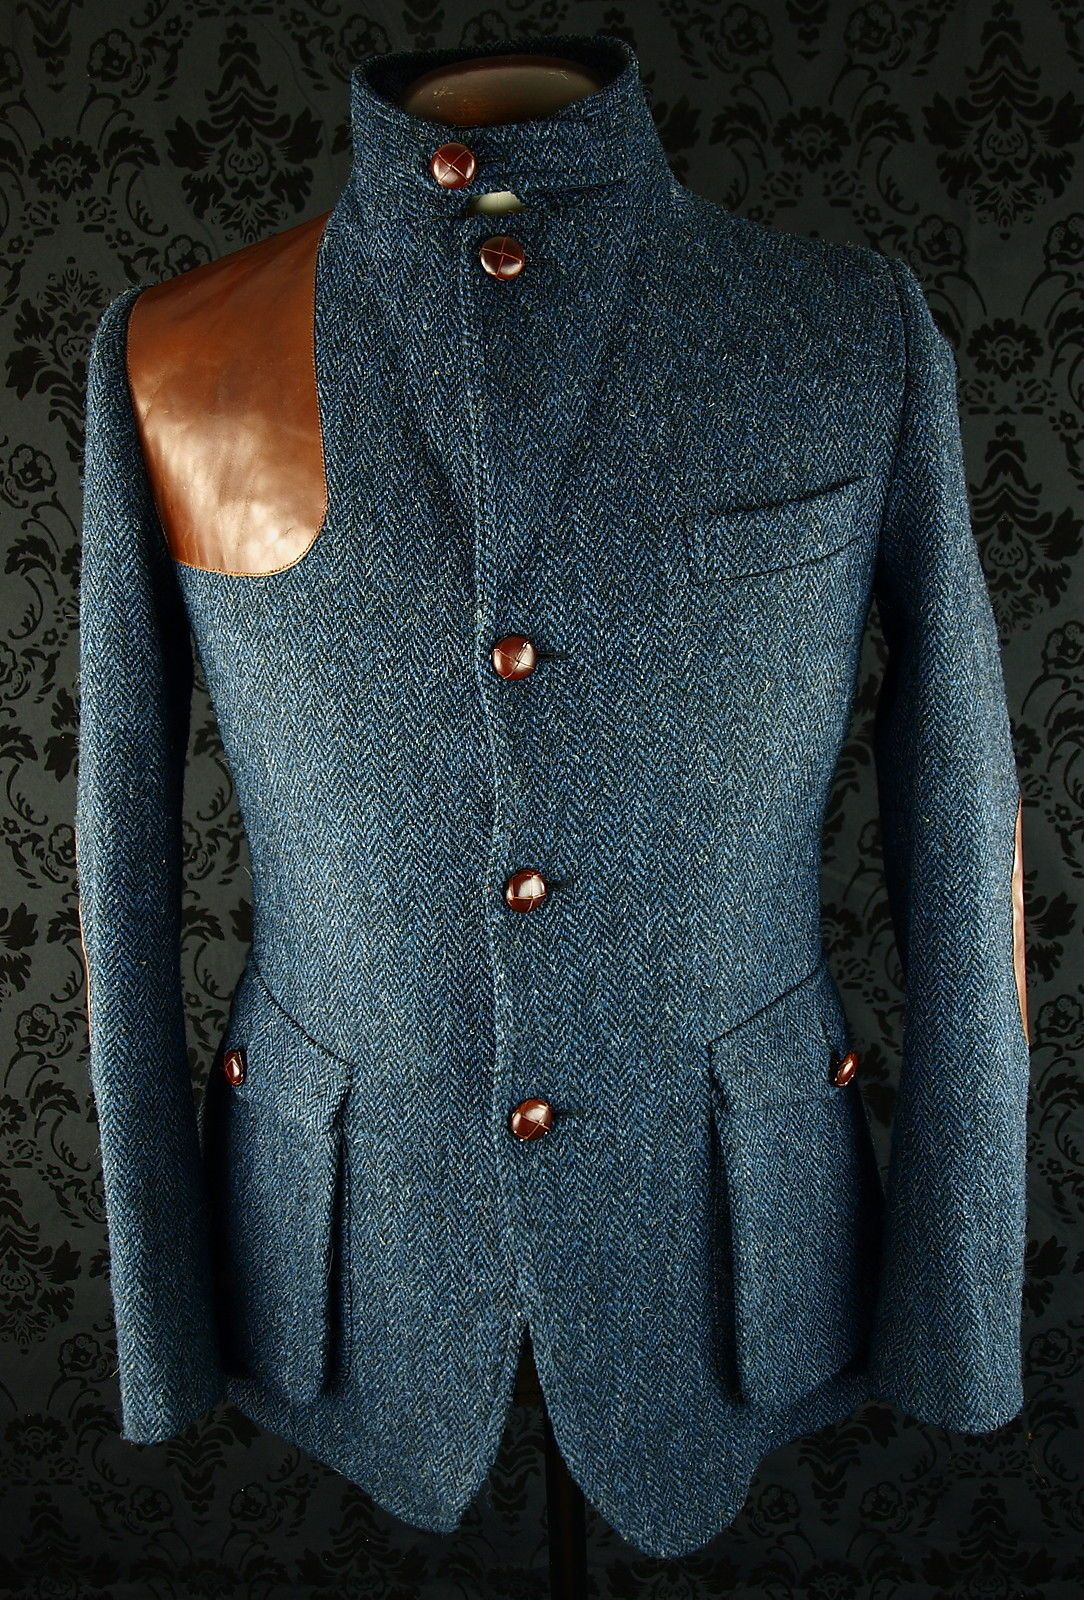 a75991776037 SUPERB MENS HARRIS TWEED NORFOLK SHOOTING HUNTING STYLE JACKET BLAZER 38  SMALL